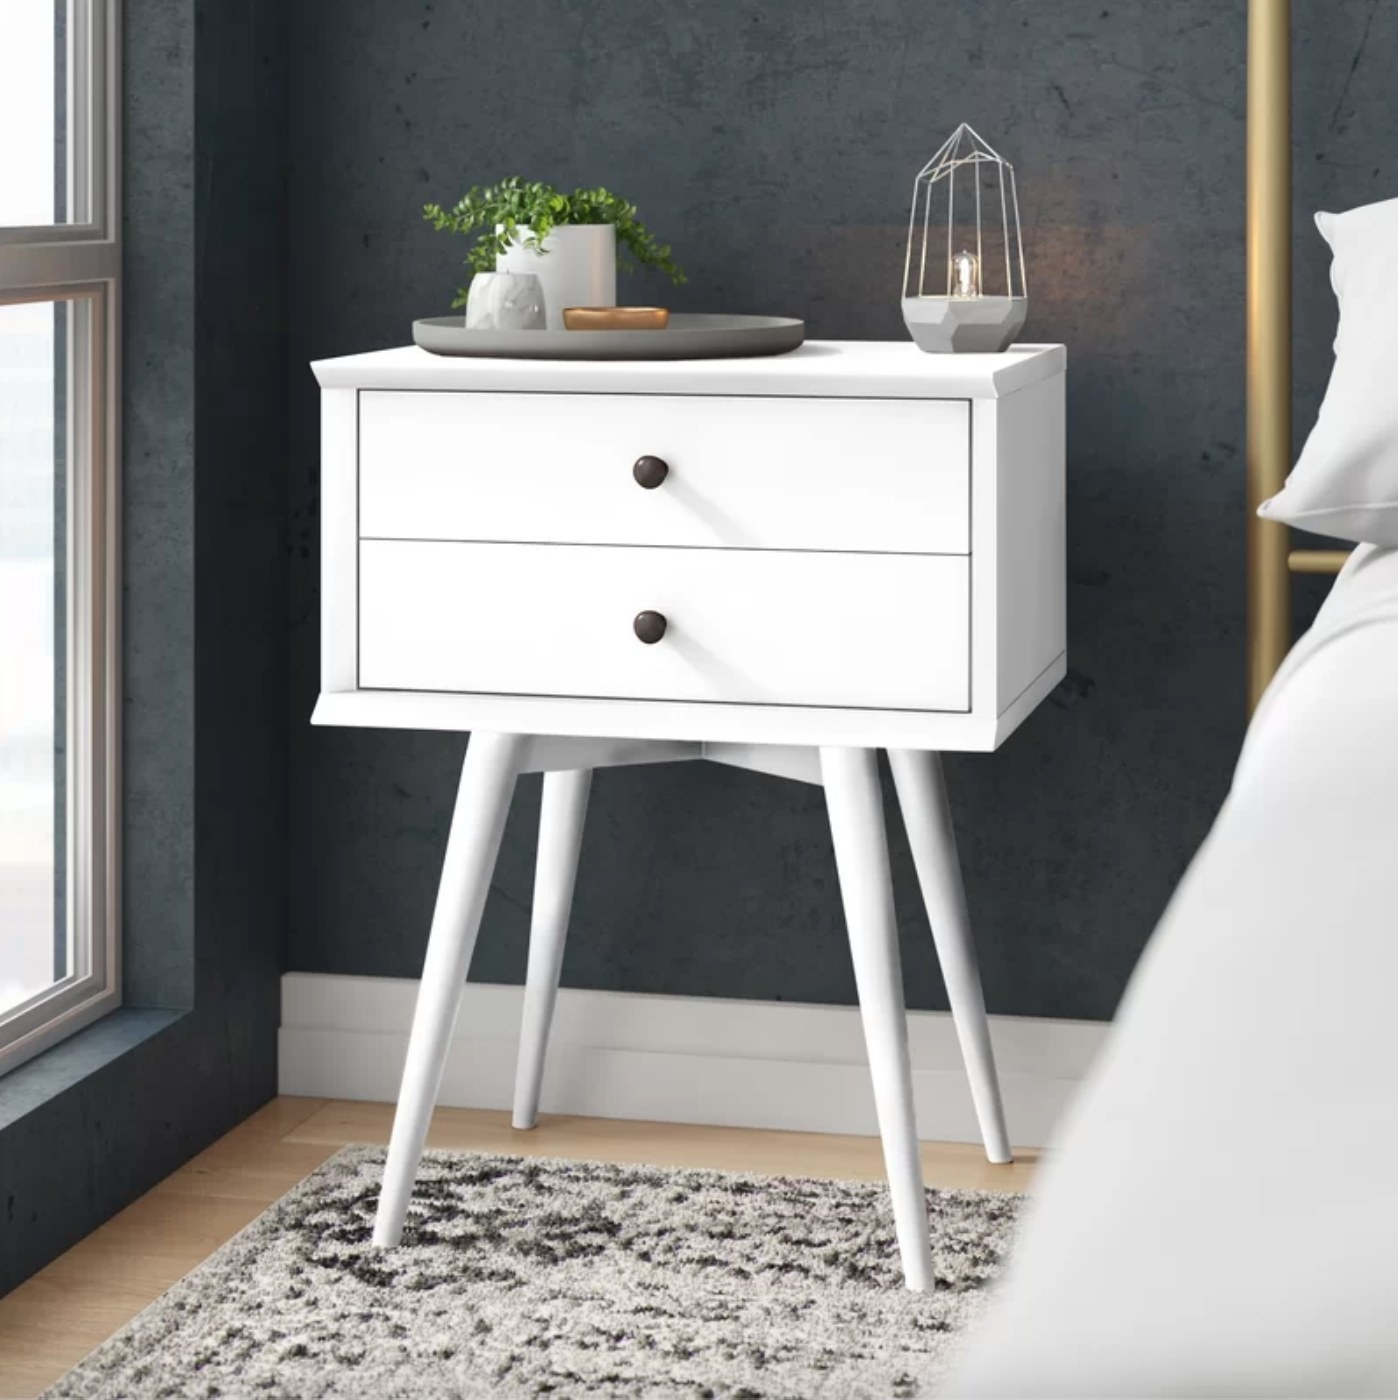 The two drawer solid wood nightstand in white holding a plant and light